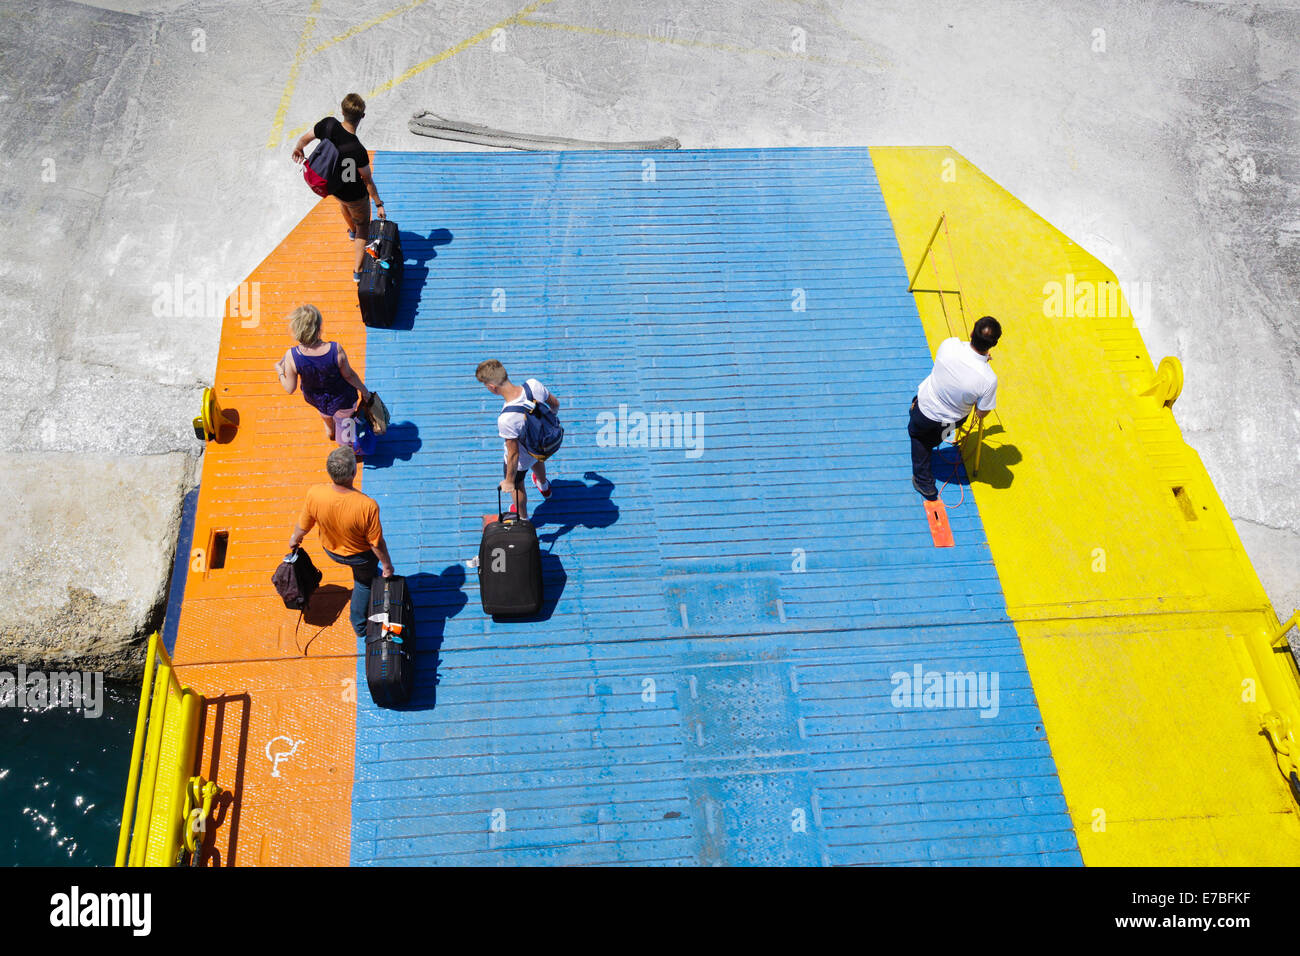 Passengers disembarking from a Greek island hopping ferry along its colourful gangplank - Stock Image